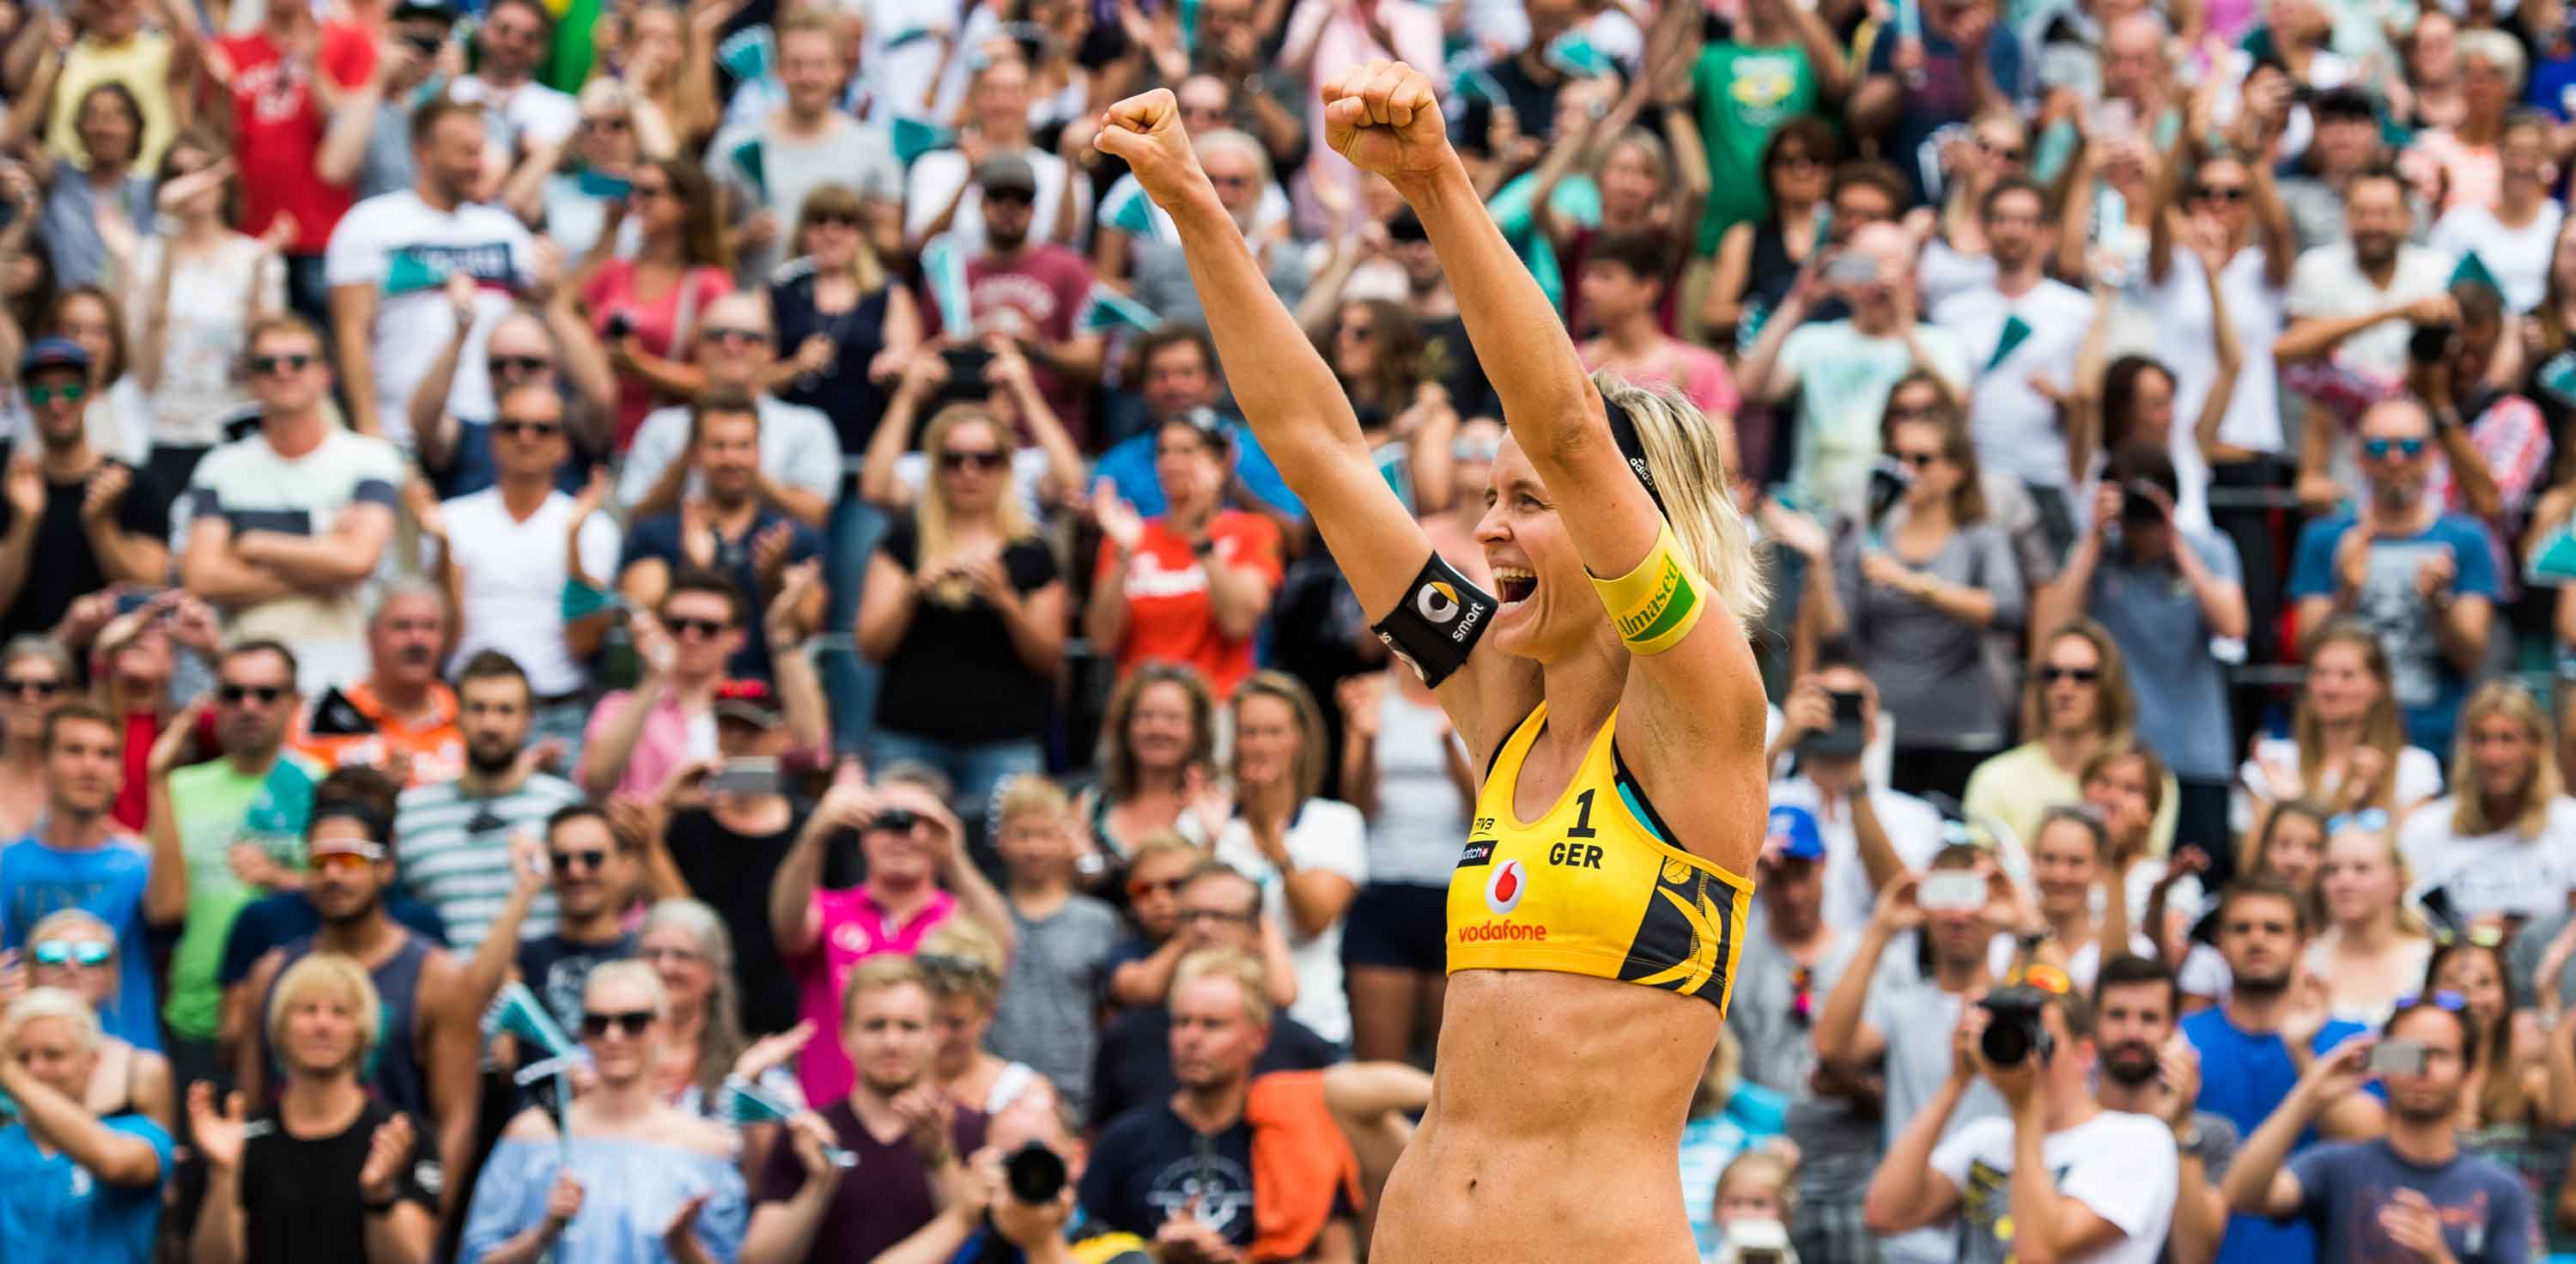 Beach Volleyball World Championships Hamburg 2019 - Teaser